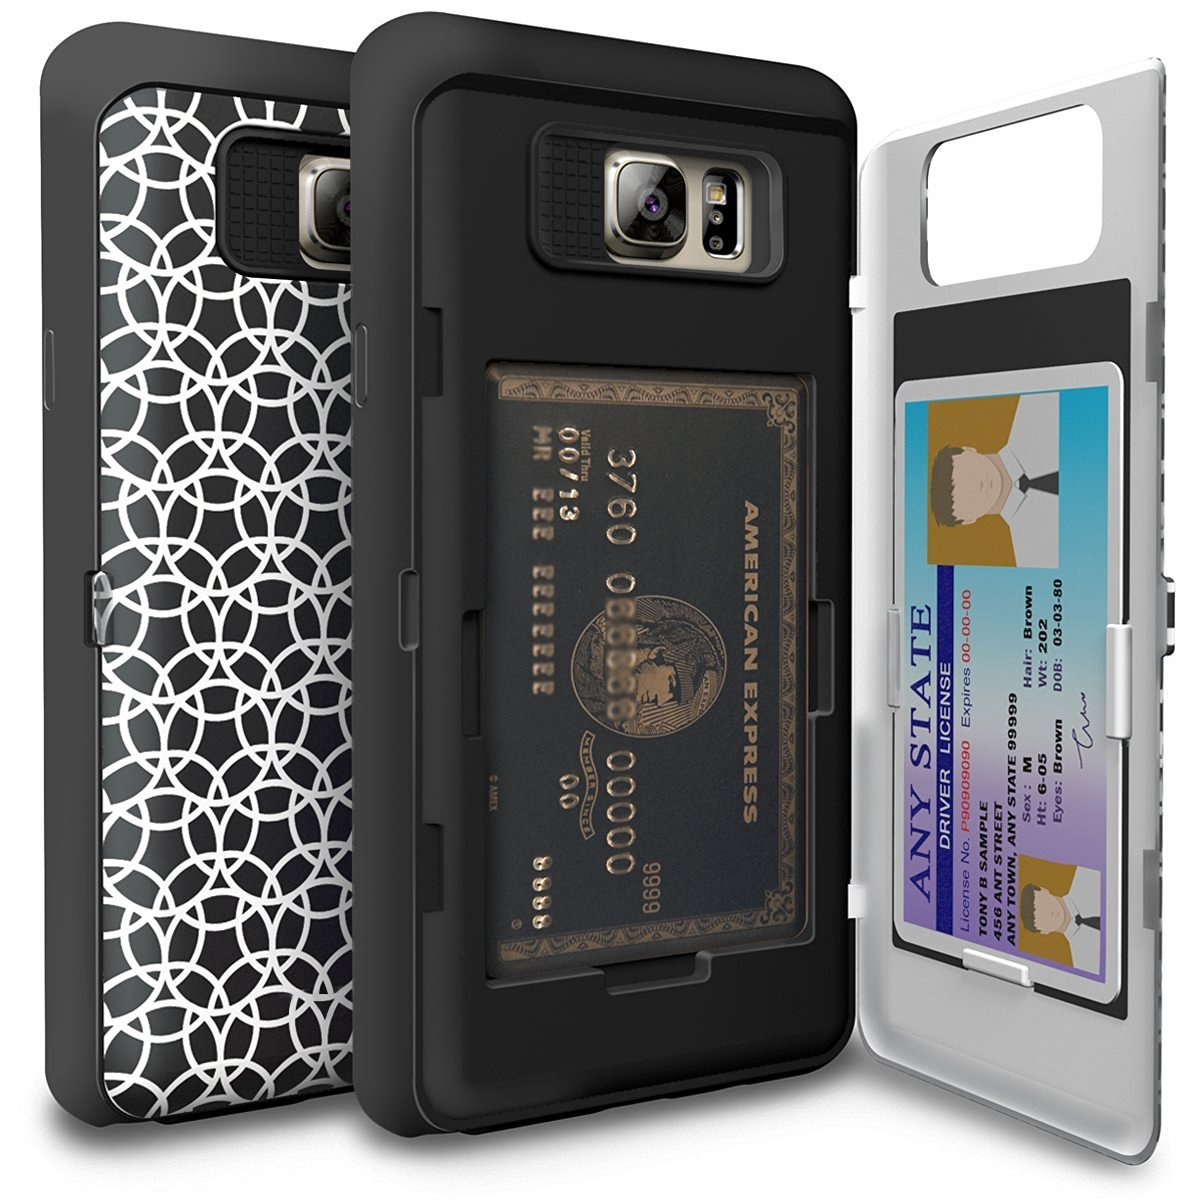 Galaxy Note 5 Case, TORU [CX PRO] - [CARD SLOT] [ID Holder] [KICKSTAND] Protective Hidden Wallet Case with Mirror for Samsung Galaxy Note 5 - Circle Geo